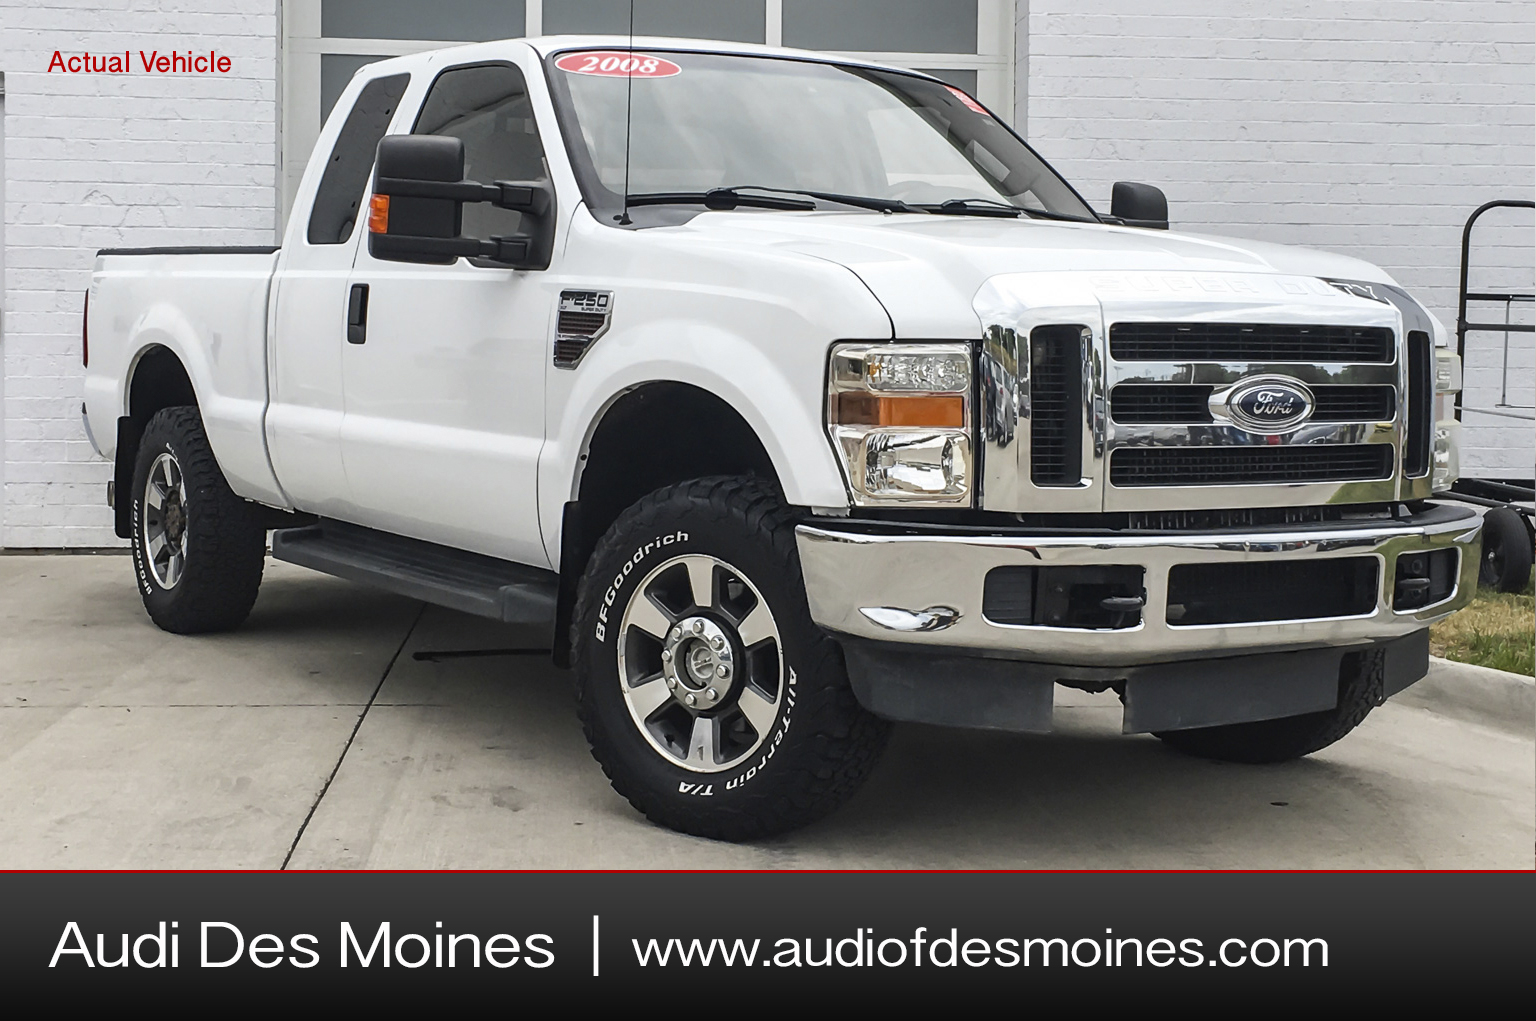 Pre-Owned 2008 Ford F-250 4wd Supercab